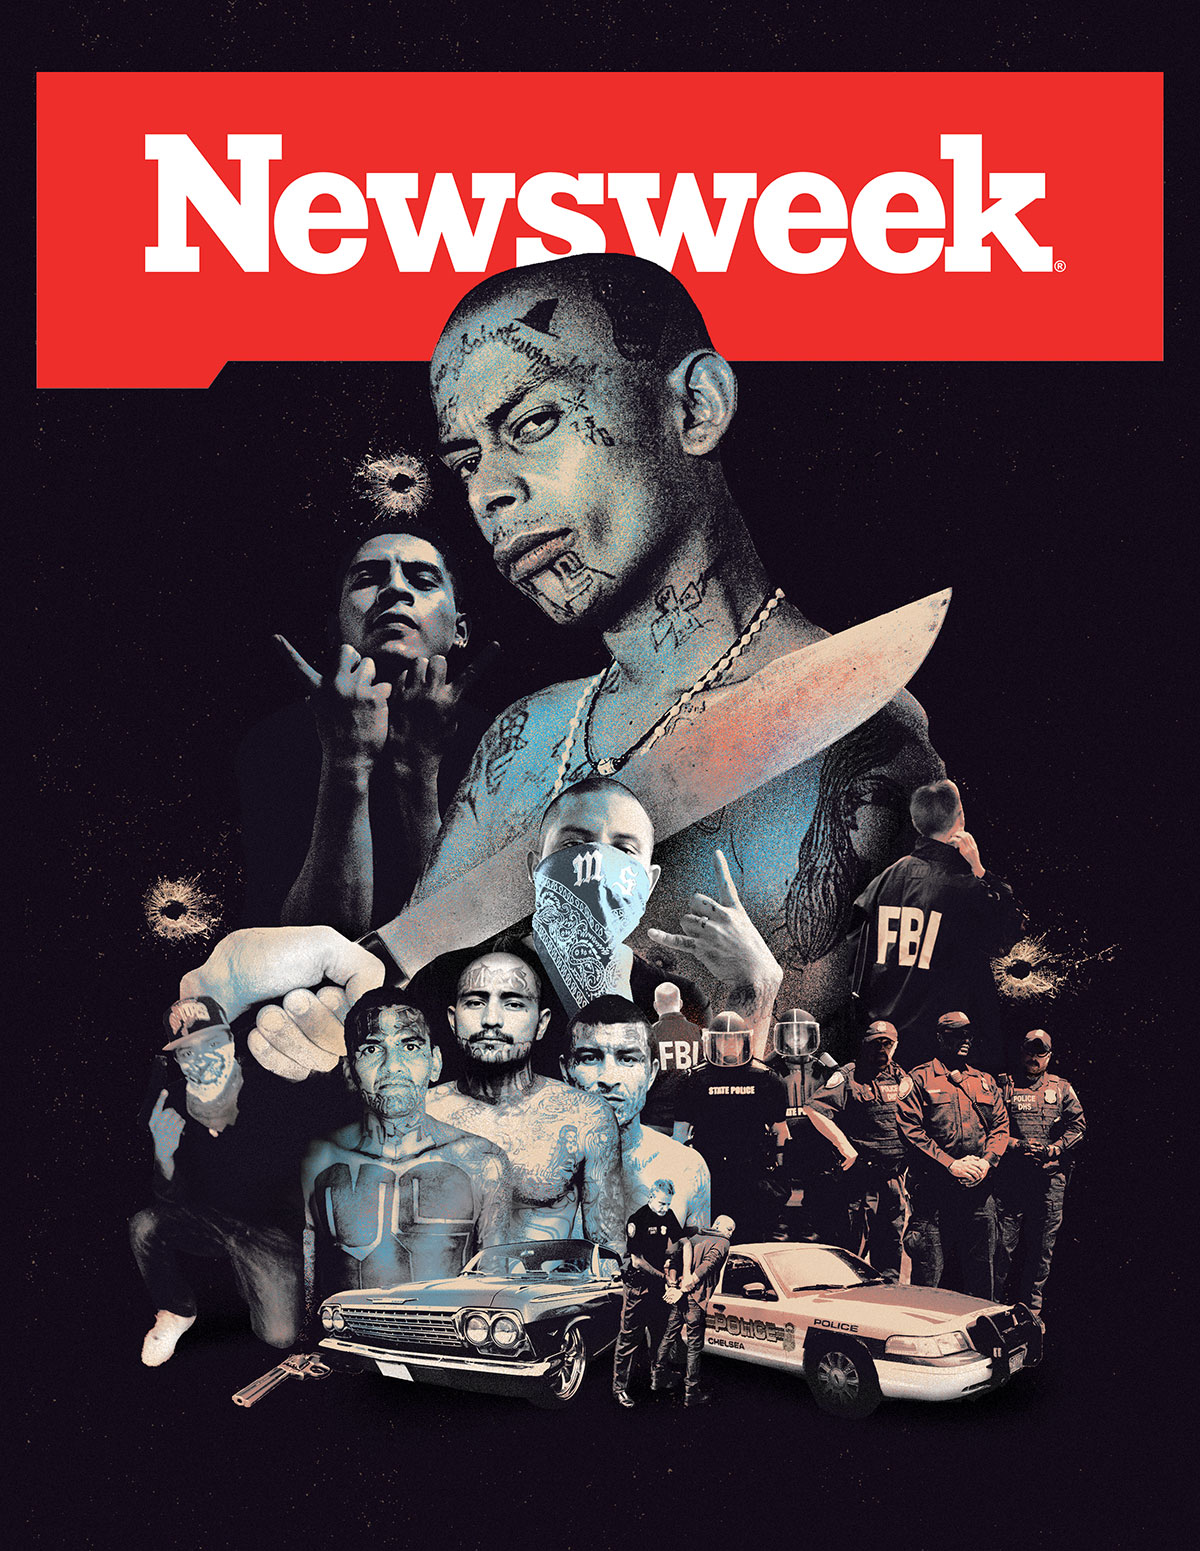 Newsweek: Gang war in USA cover